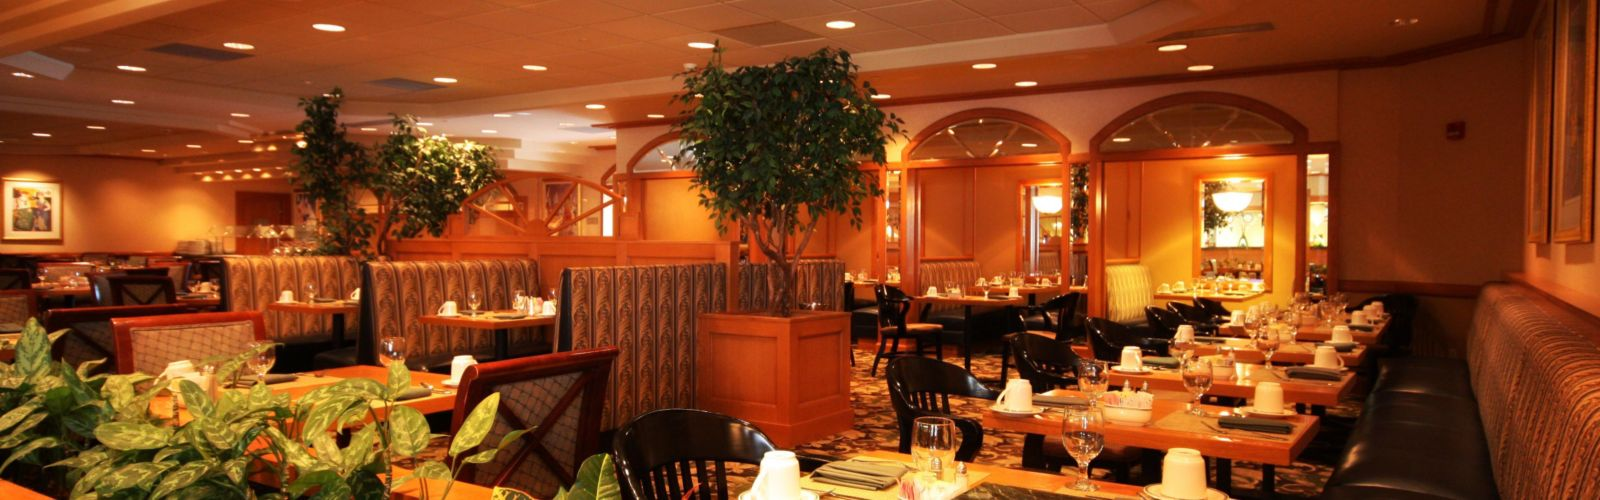 Restaurants Near Chicago Northbrook Crowne Plaza